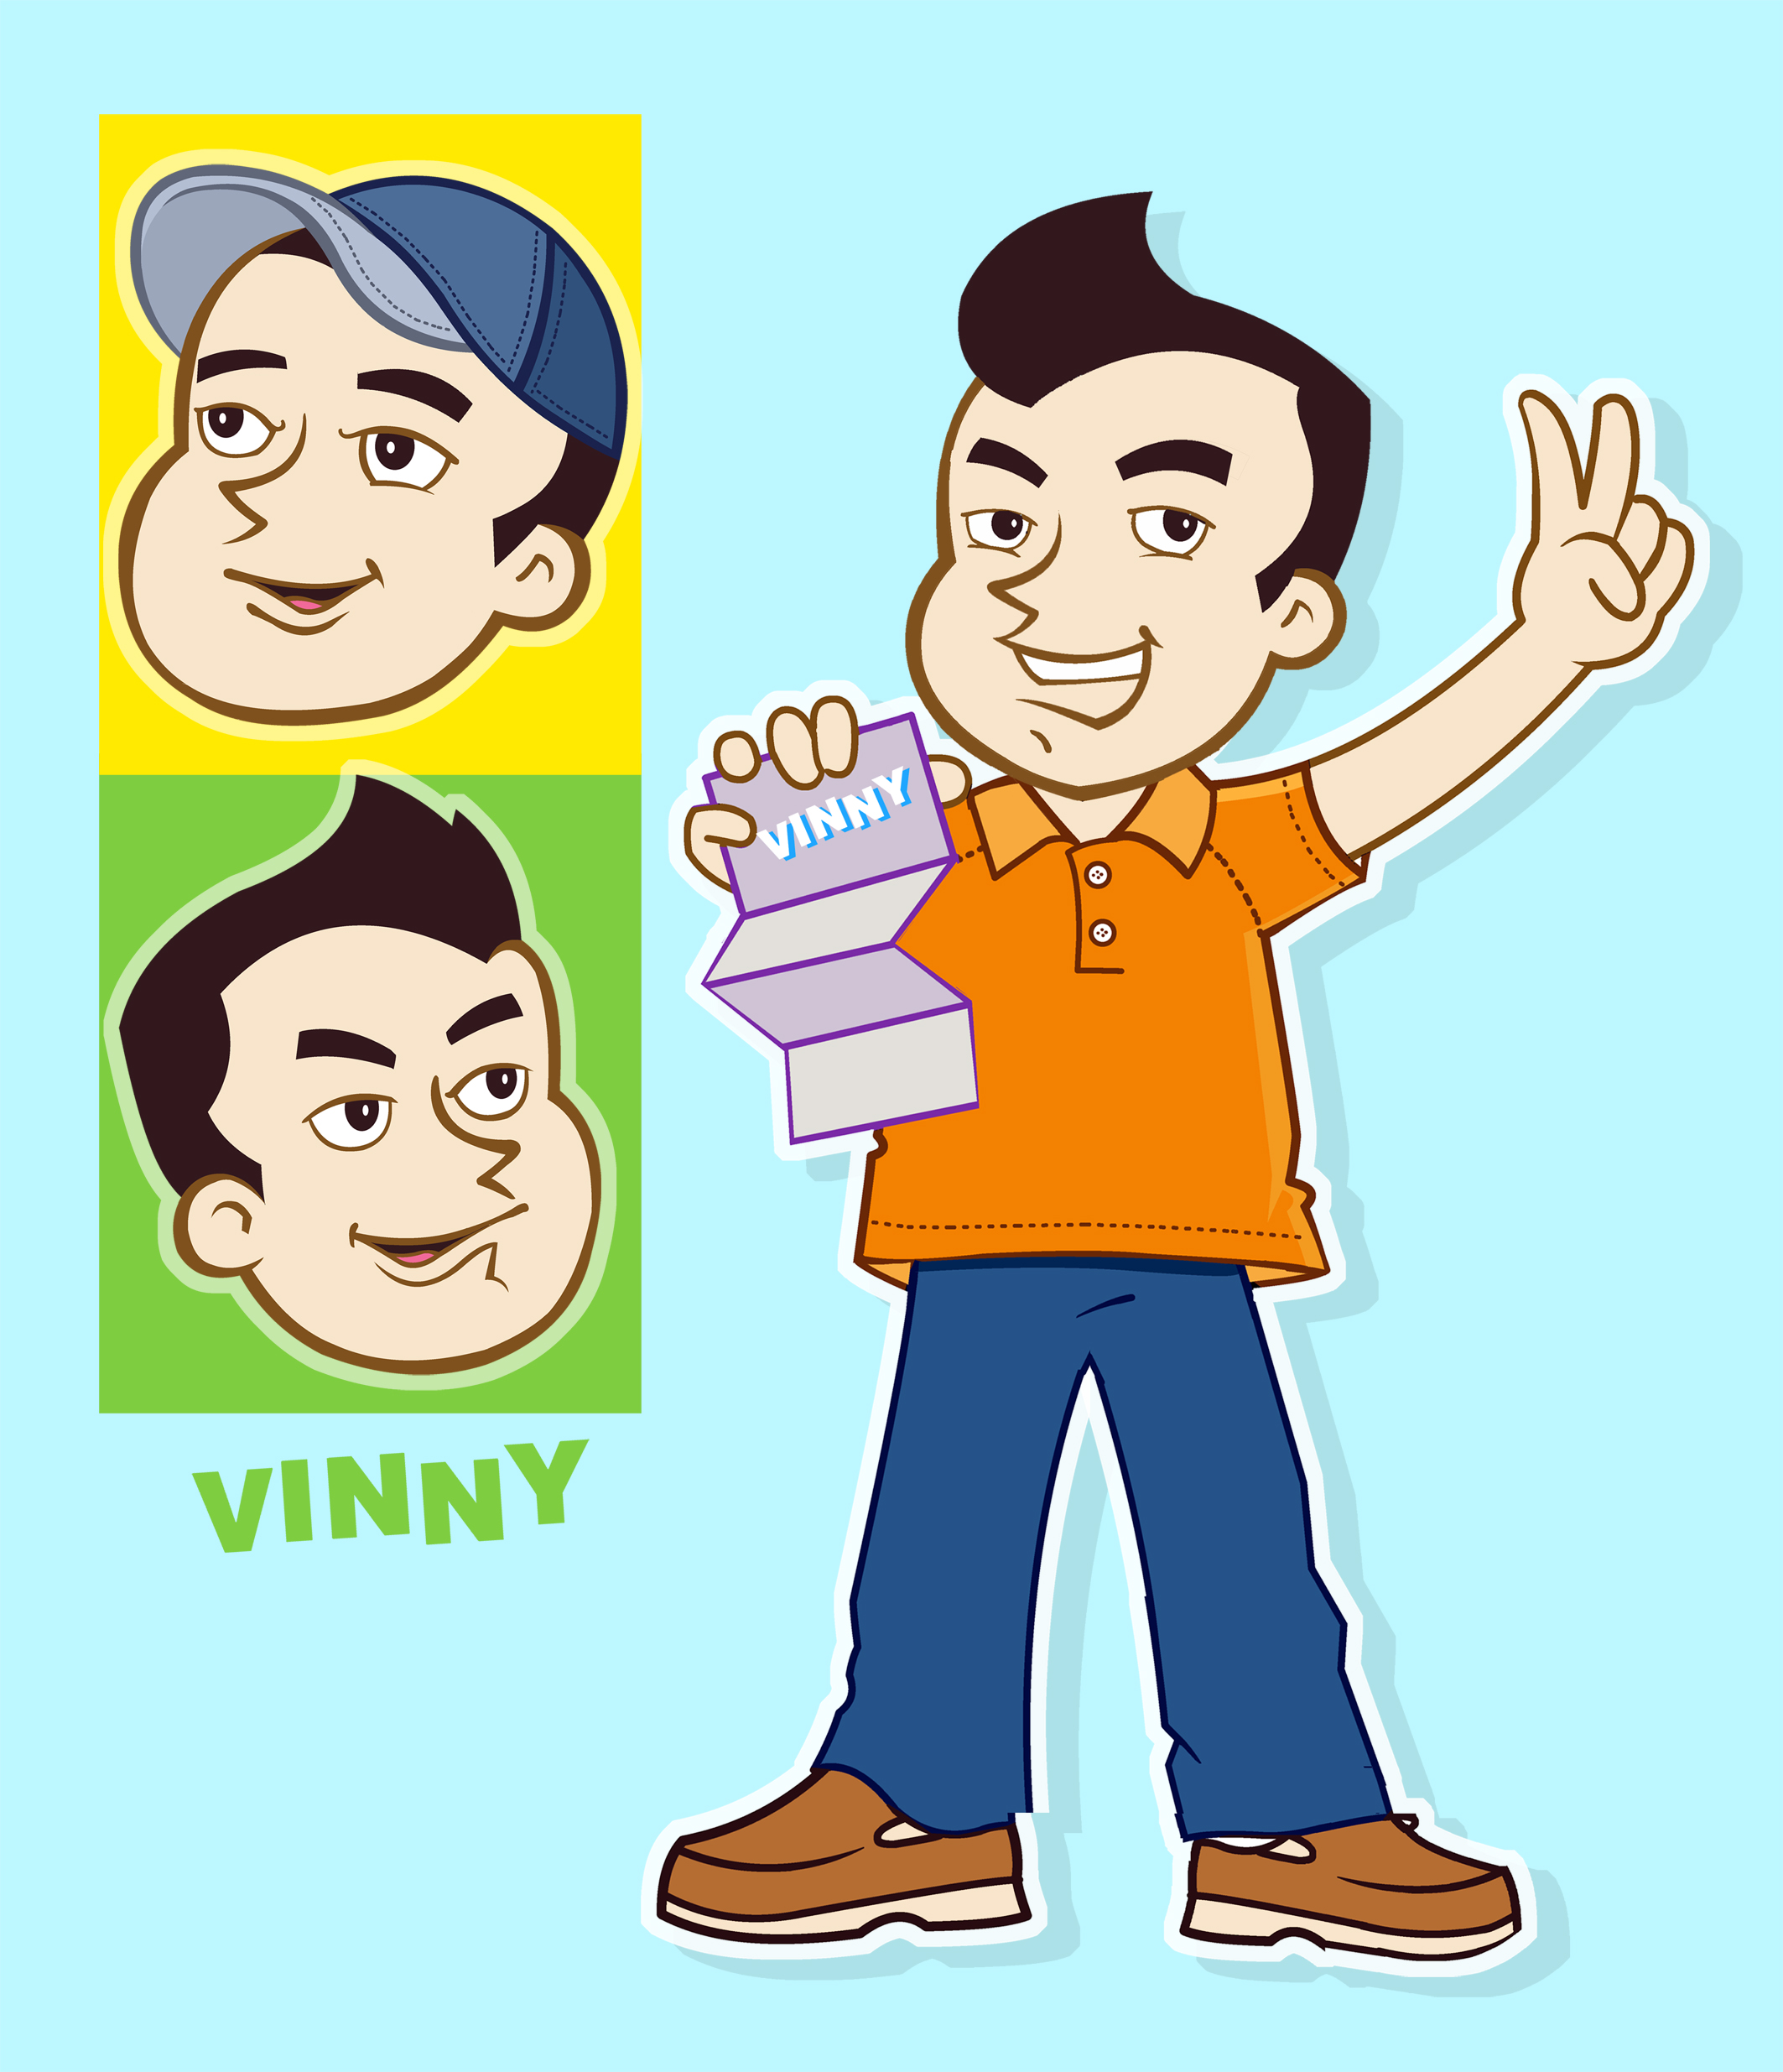 Logo Design by Private User - Entry No. 105 in the Logo Design Contest Unique CHARACTER logo Design Wanted for Vinny.